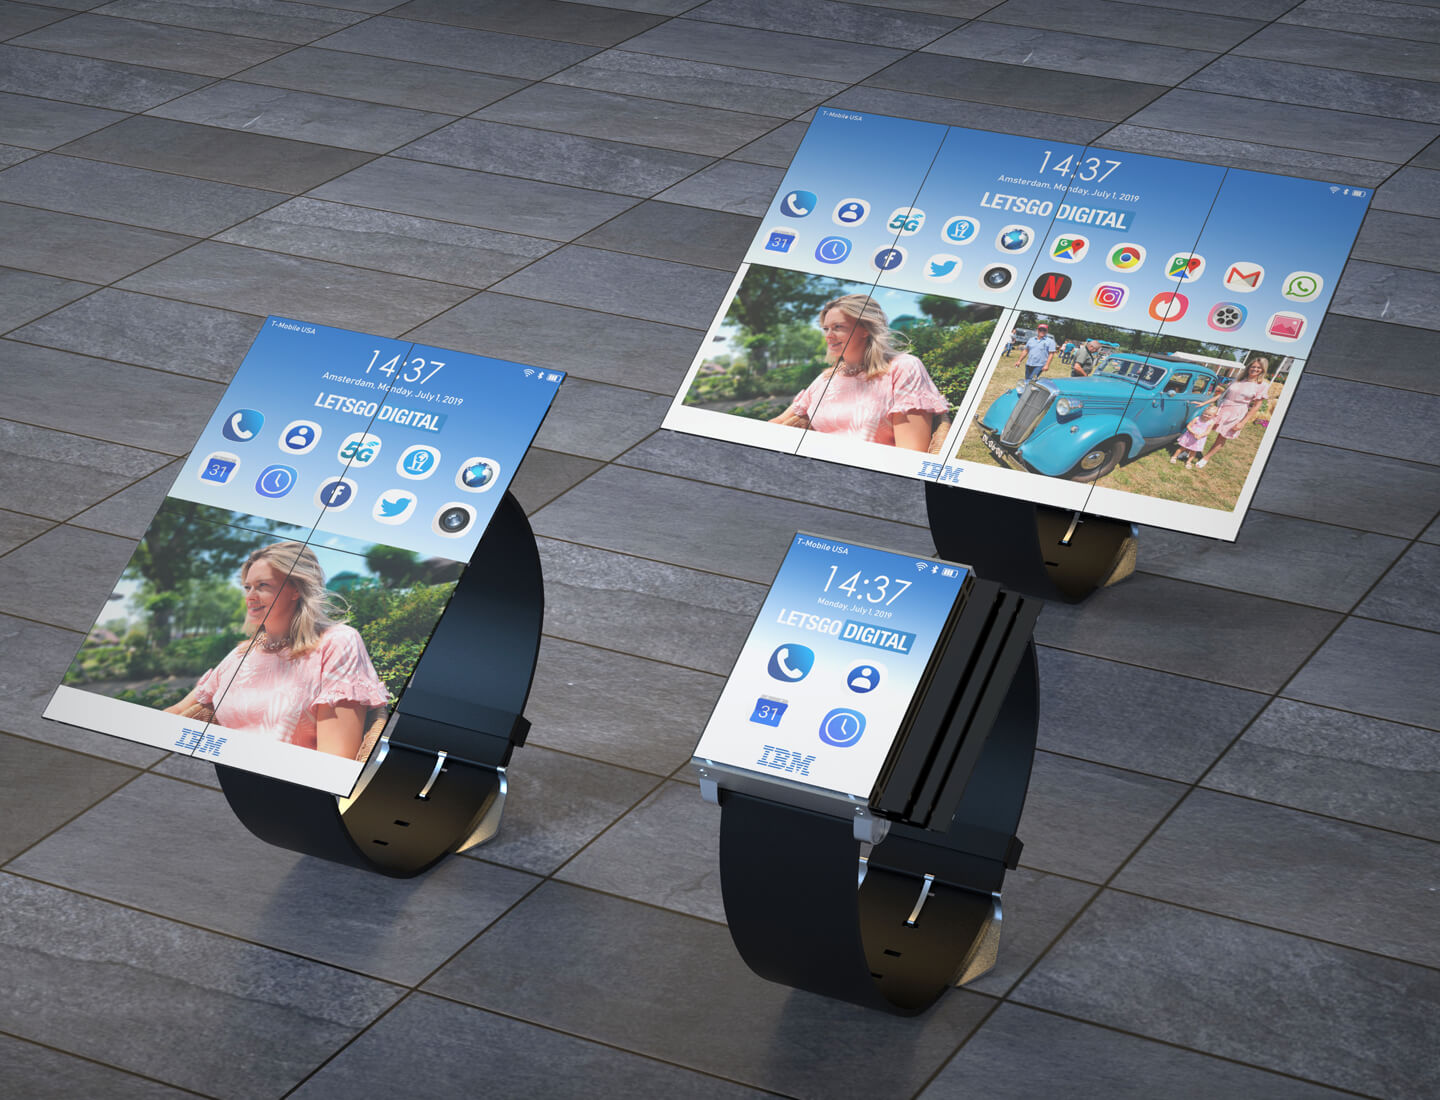 IBM smartwatches